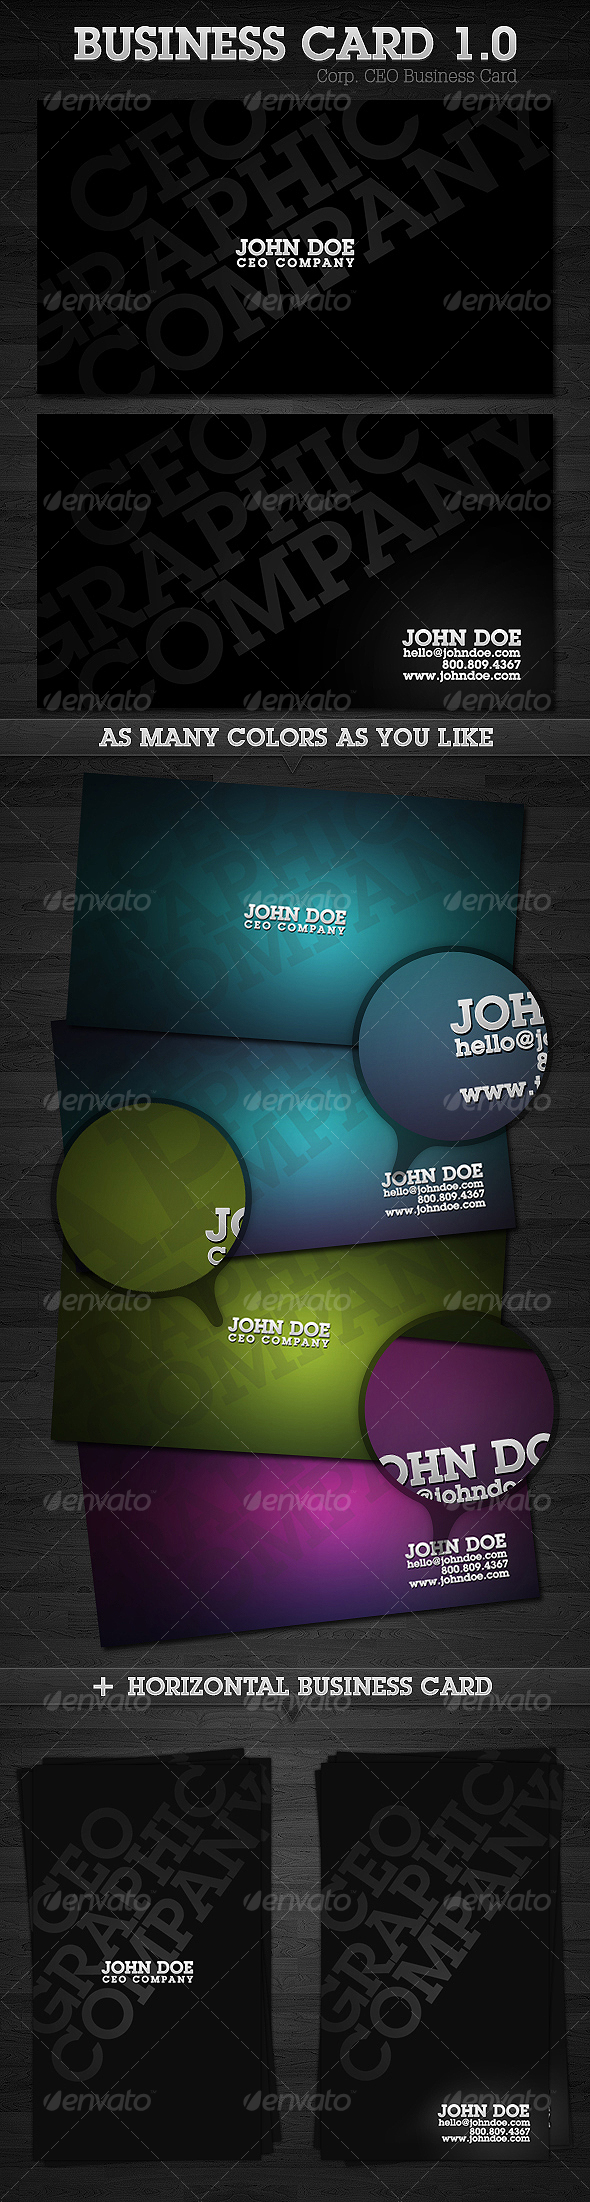 Corp. CEO Business Card 1.0 - Corporate Business Cards